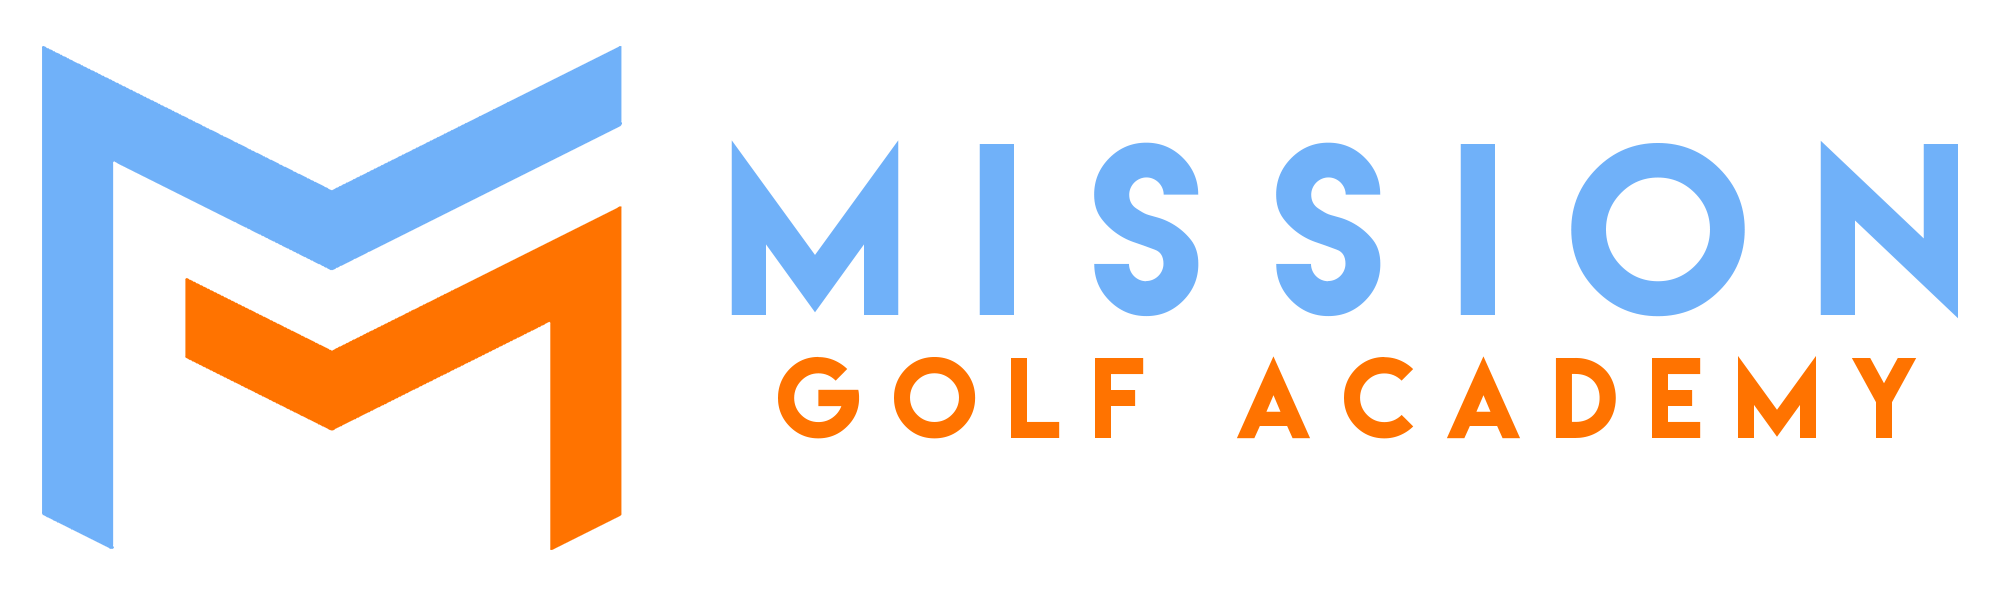 Mission Golf Academy Logo